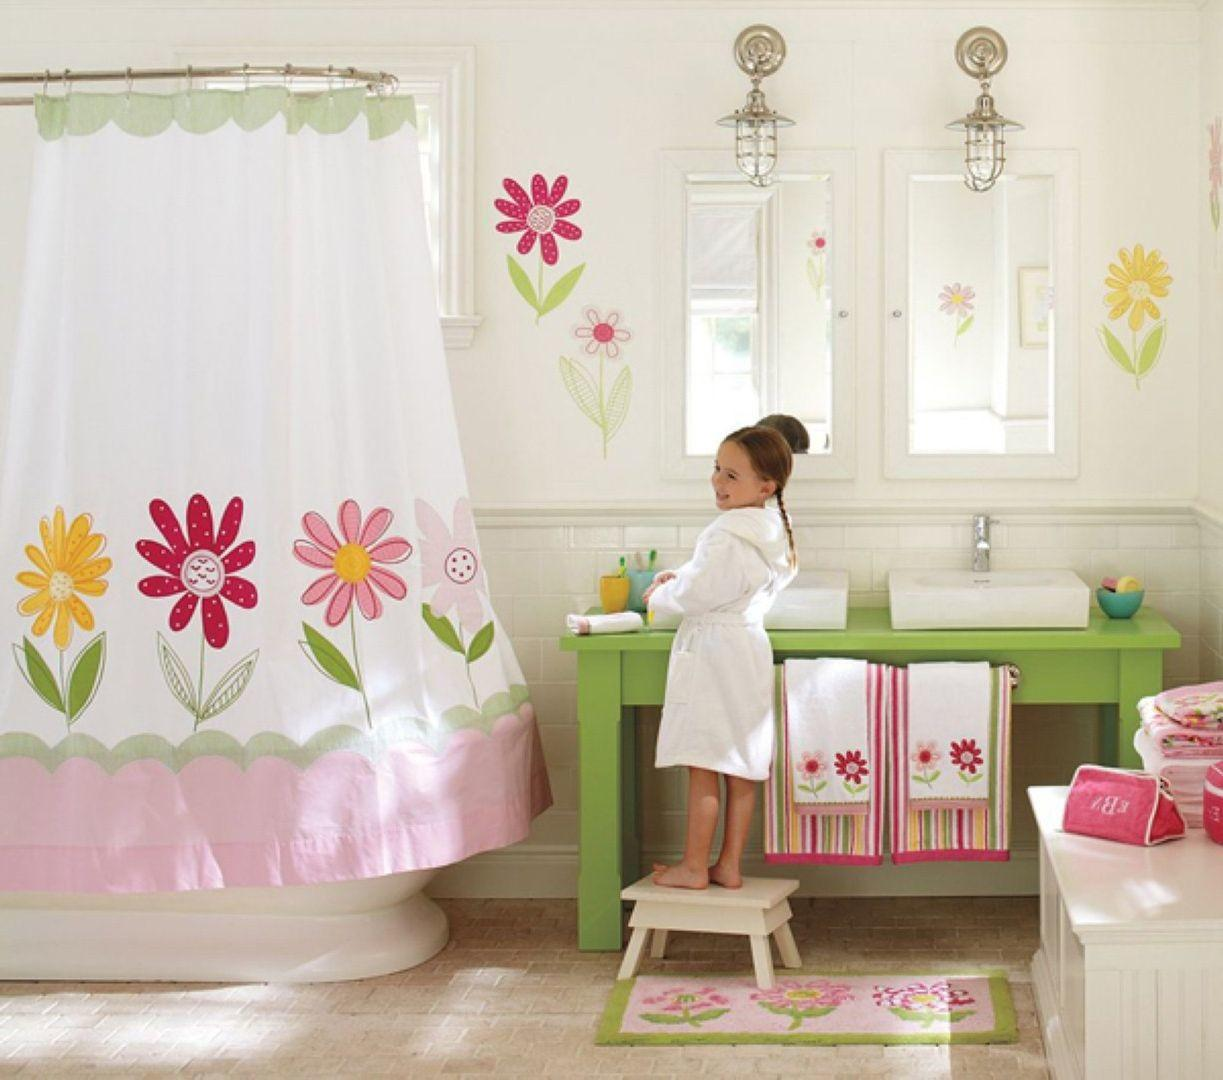 Bathroom Kids Sink New 2017 Elegant Decor Pics